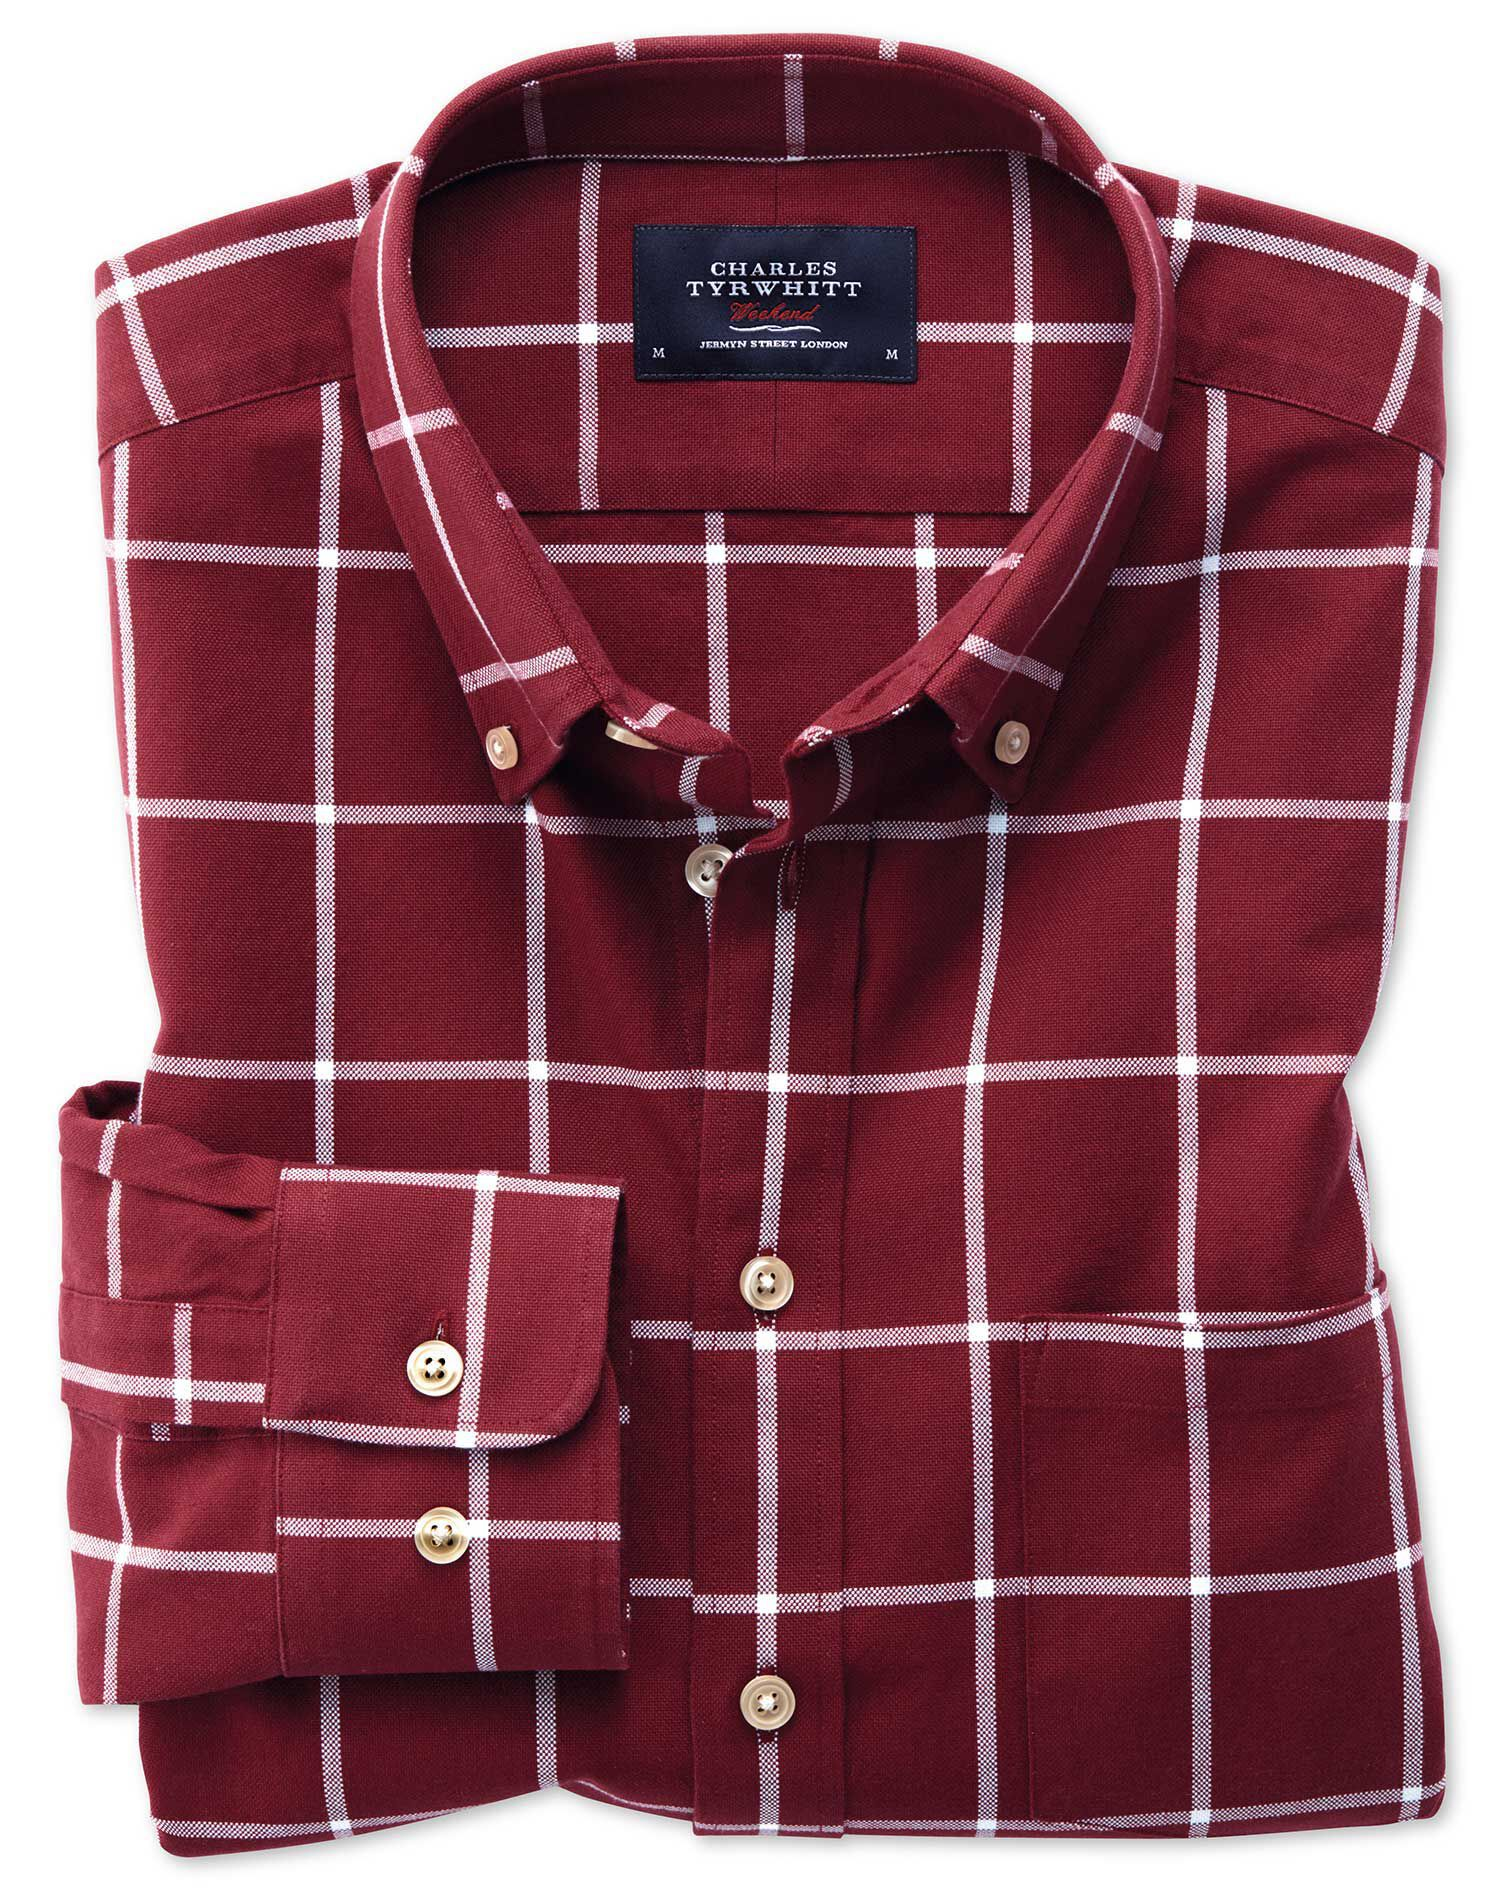 Classic Fit Button-Down Washed Oxford Burgundy and White Check Cotton Shirt Single Cuff Size XL by C